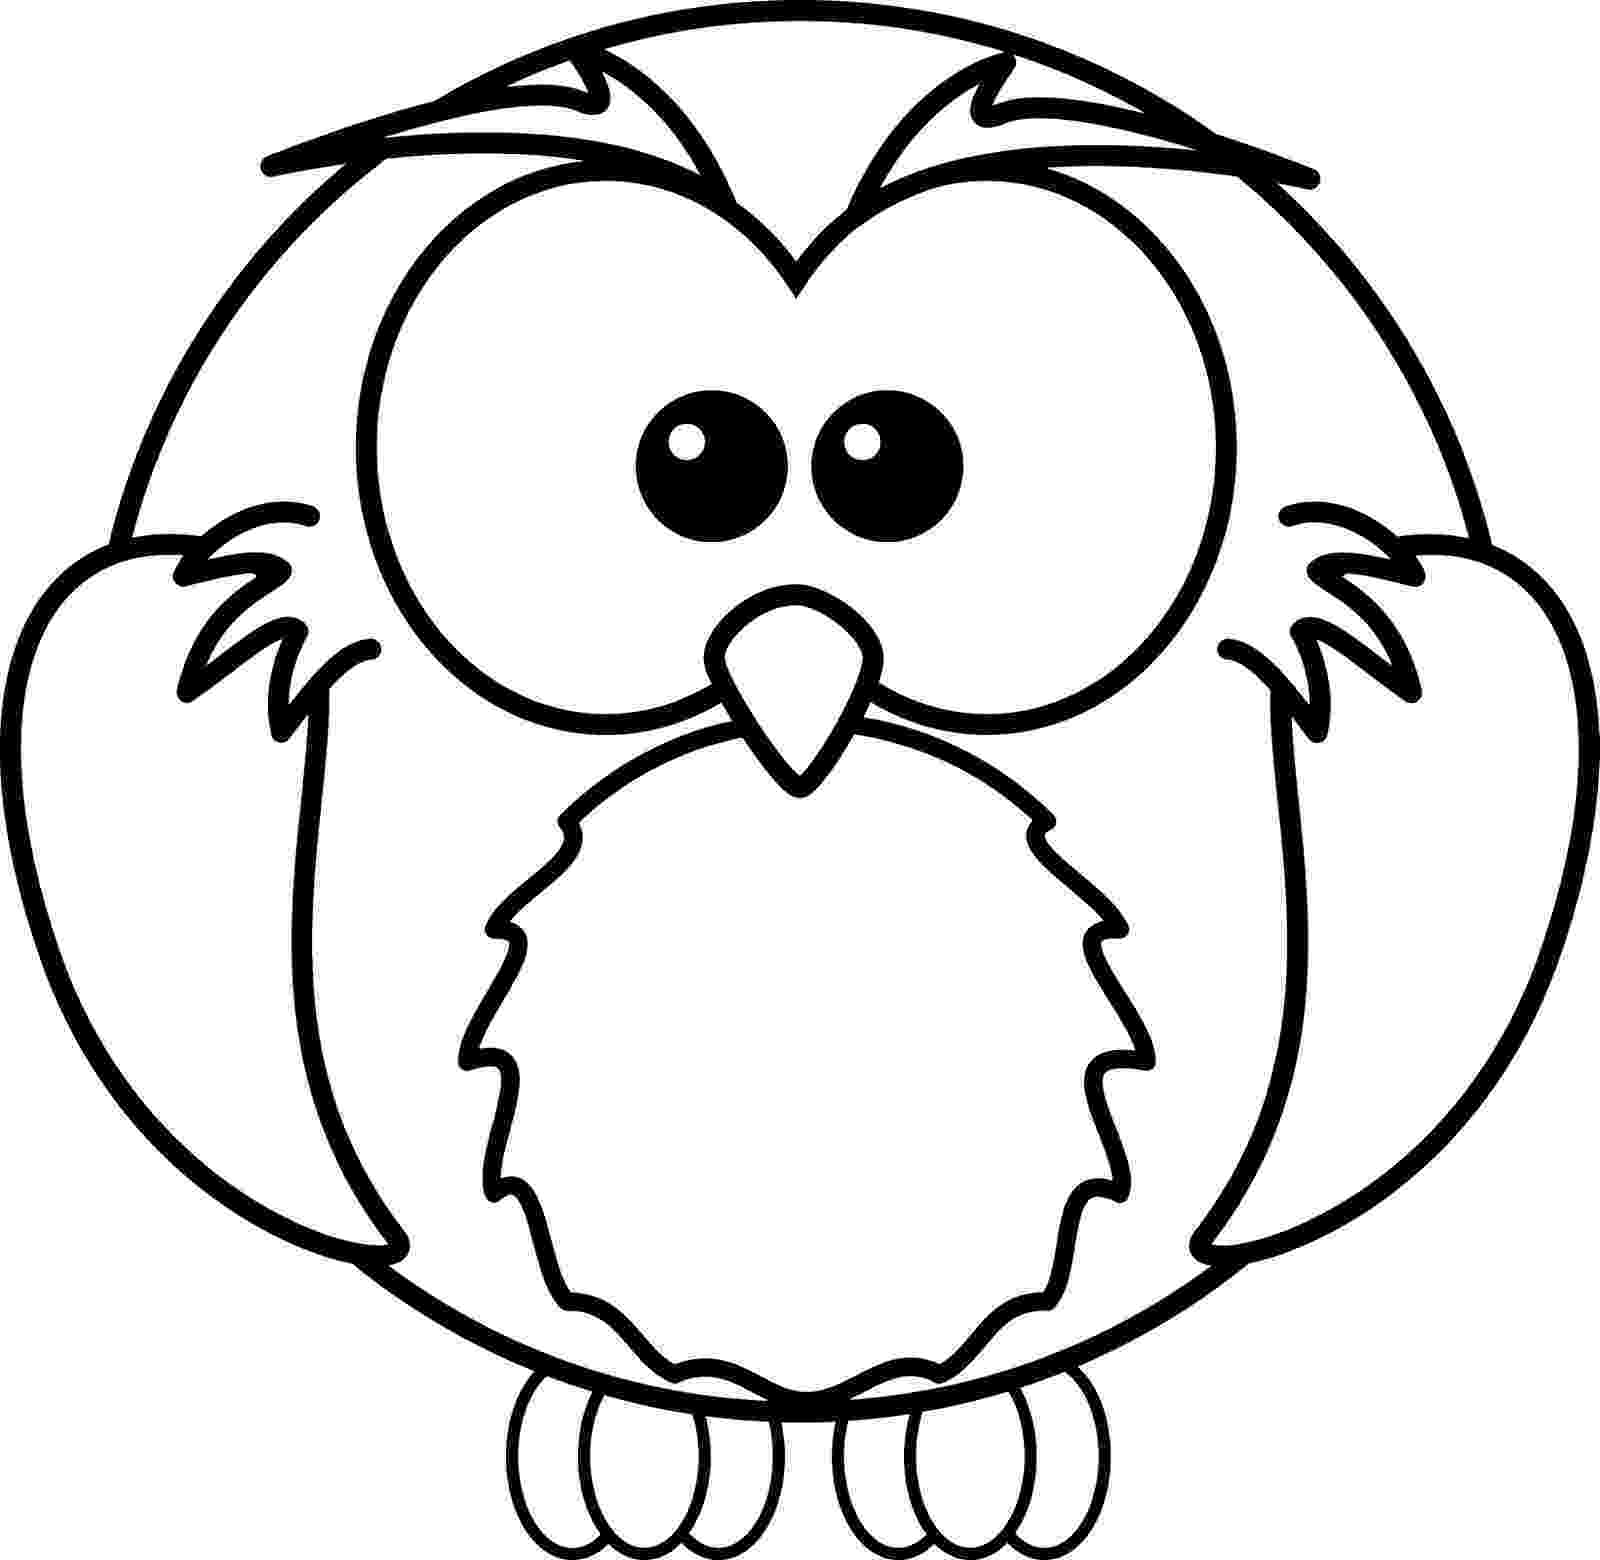 colored pictures of owls owl coloring pages for adults free detailed owl coloring of owls colored pictures